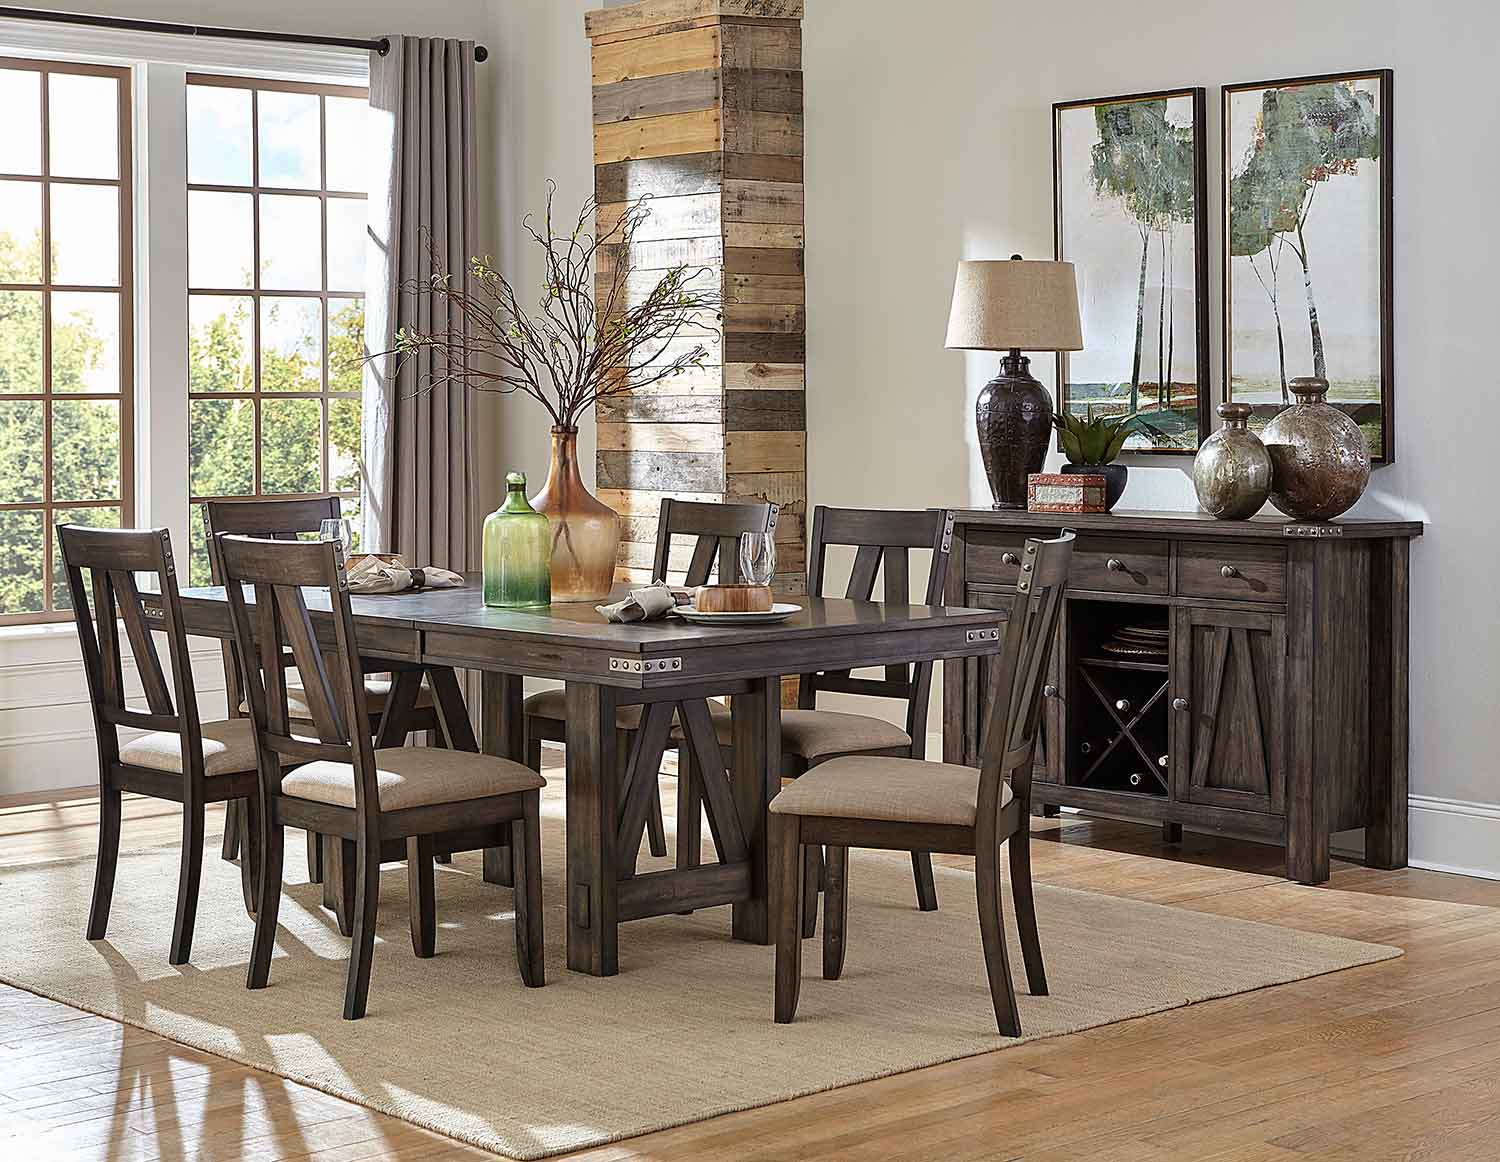 Homelegance Mattawa Rectangular Dining Set - Brown/Hints of Gray Undertone